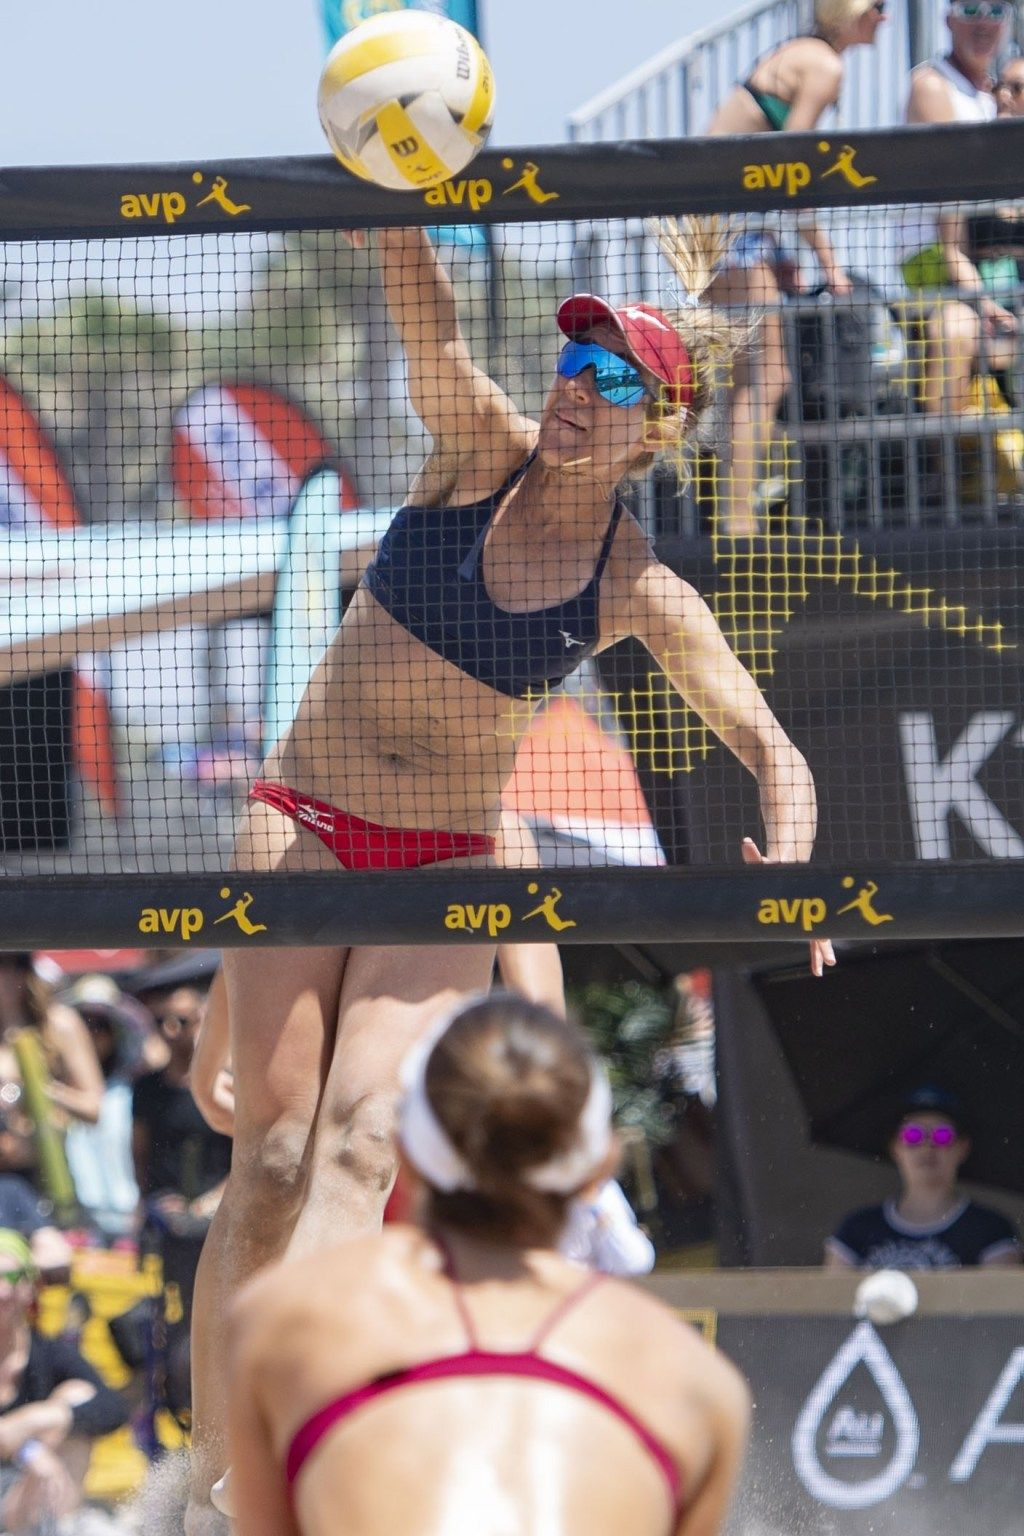 Avp Tour Chase Budingers Block Party Leads To Semis In Huntington Beach Open Sign Company Huntington Beach Casey Patterson